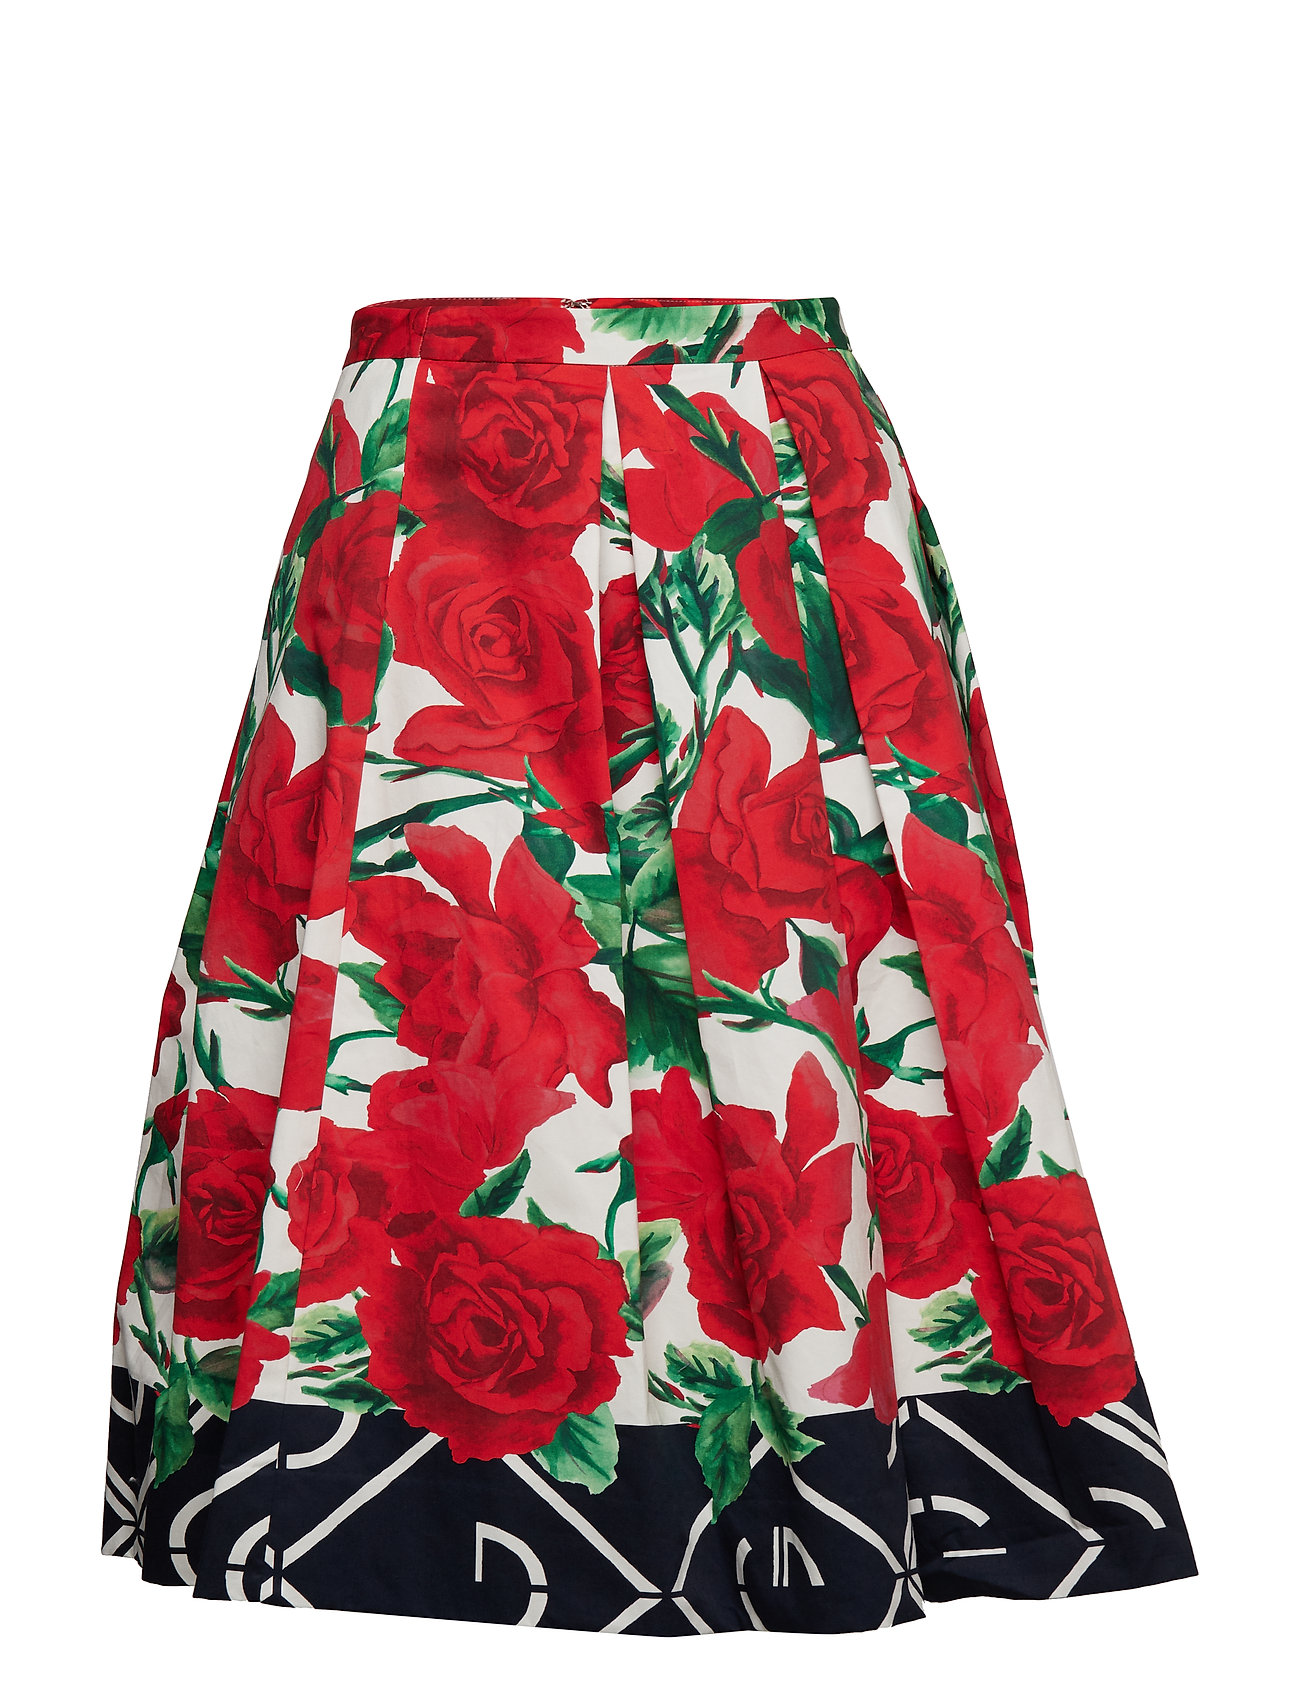 GANT O1. PLEATED ROSE SKIRT - ALL OVER PRINT